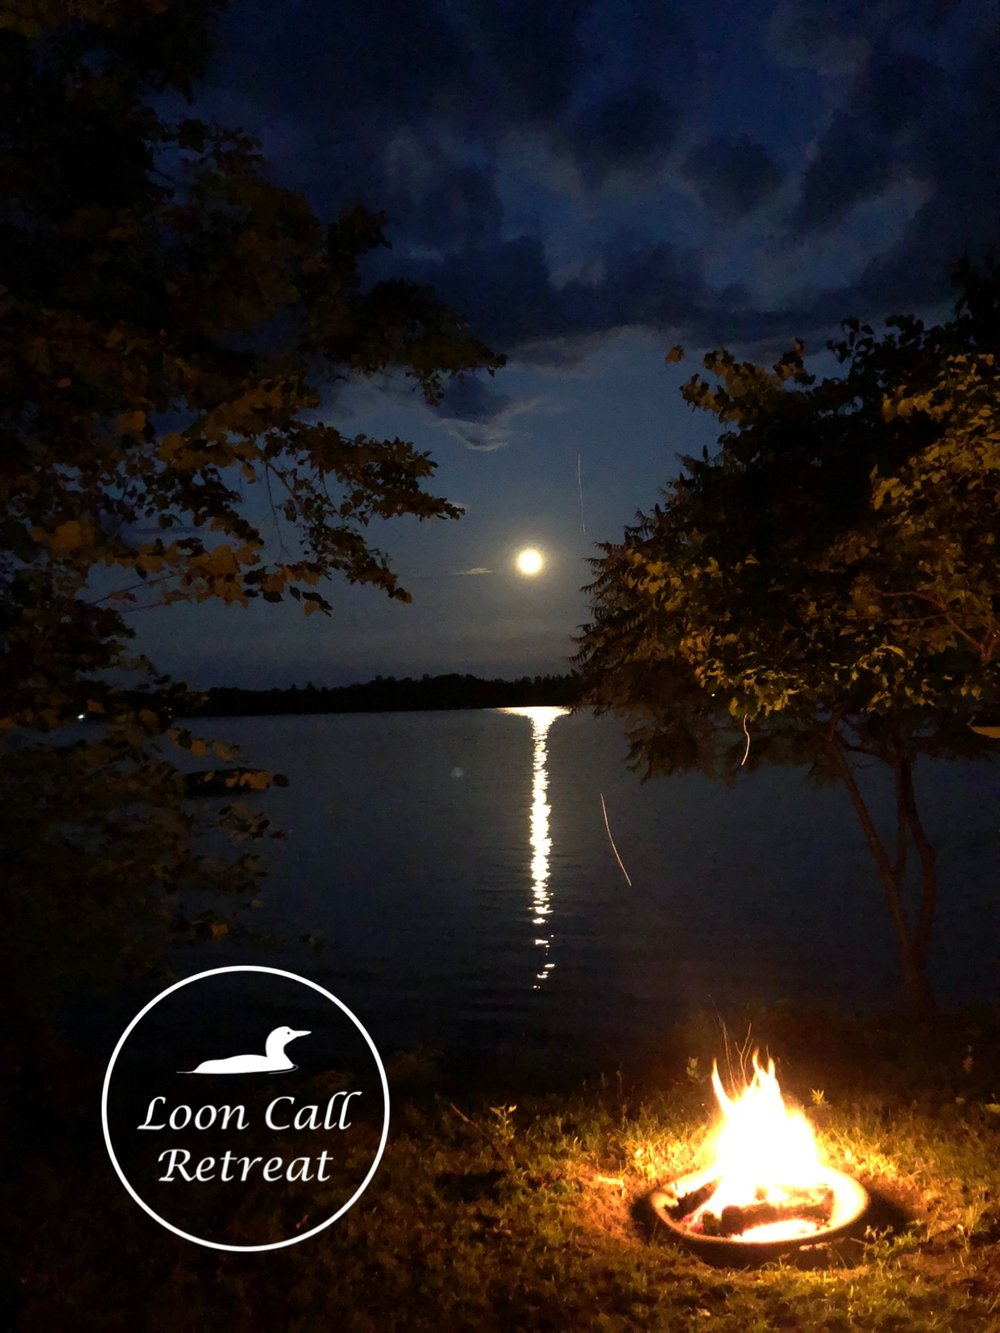 Some Suggestions From Loon Call Retreat... -